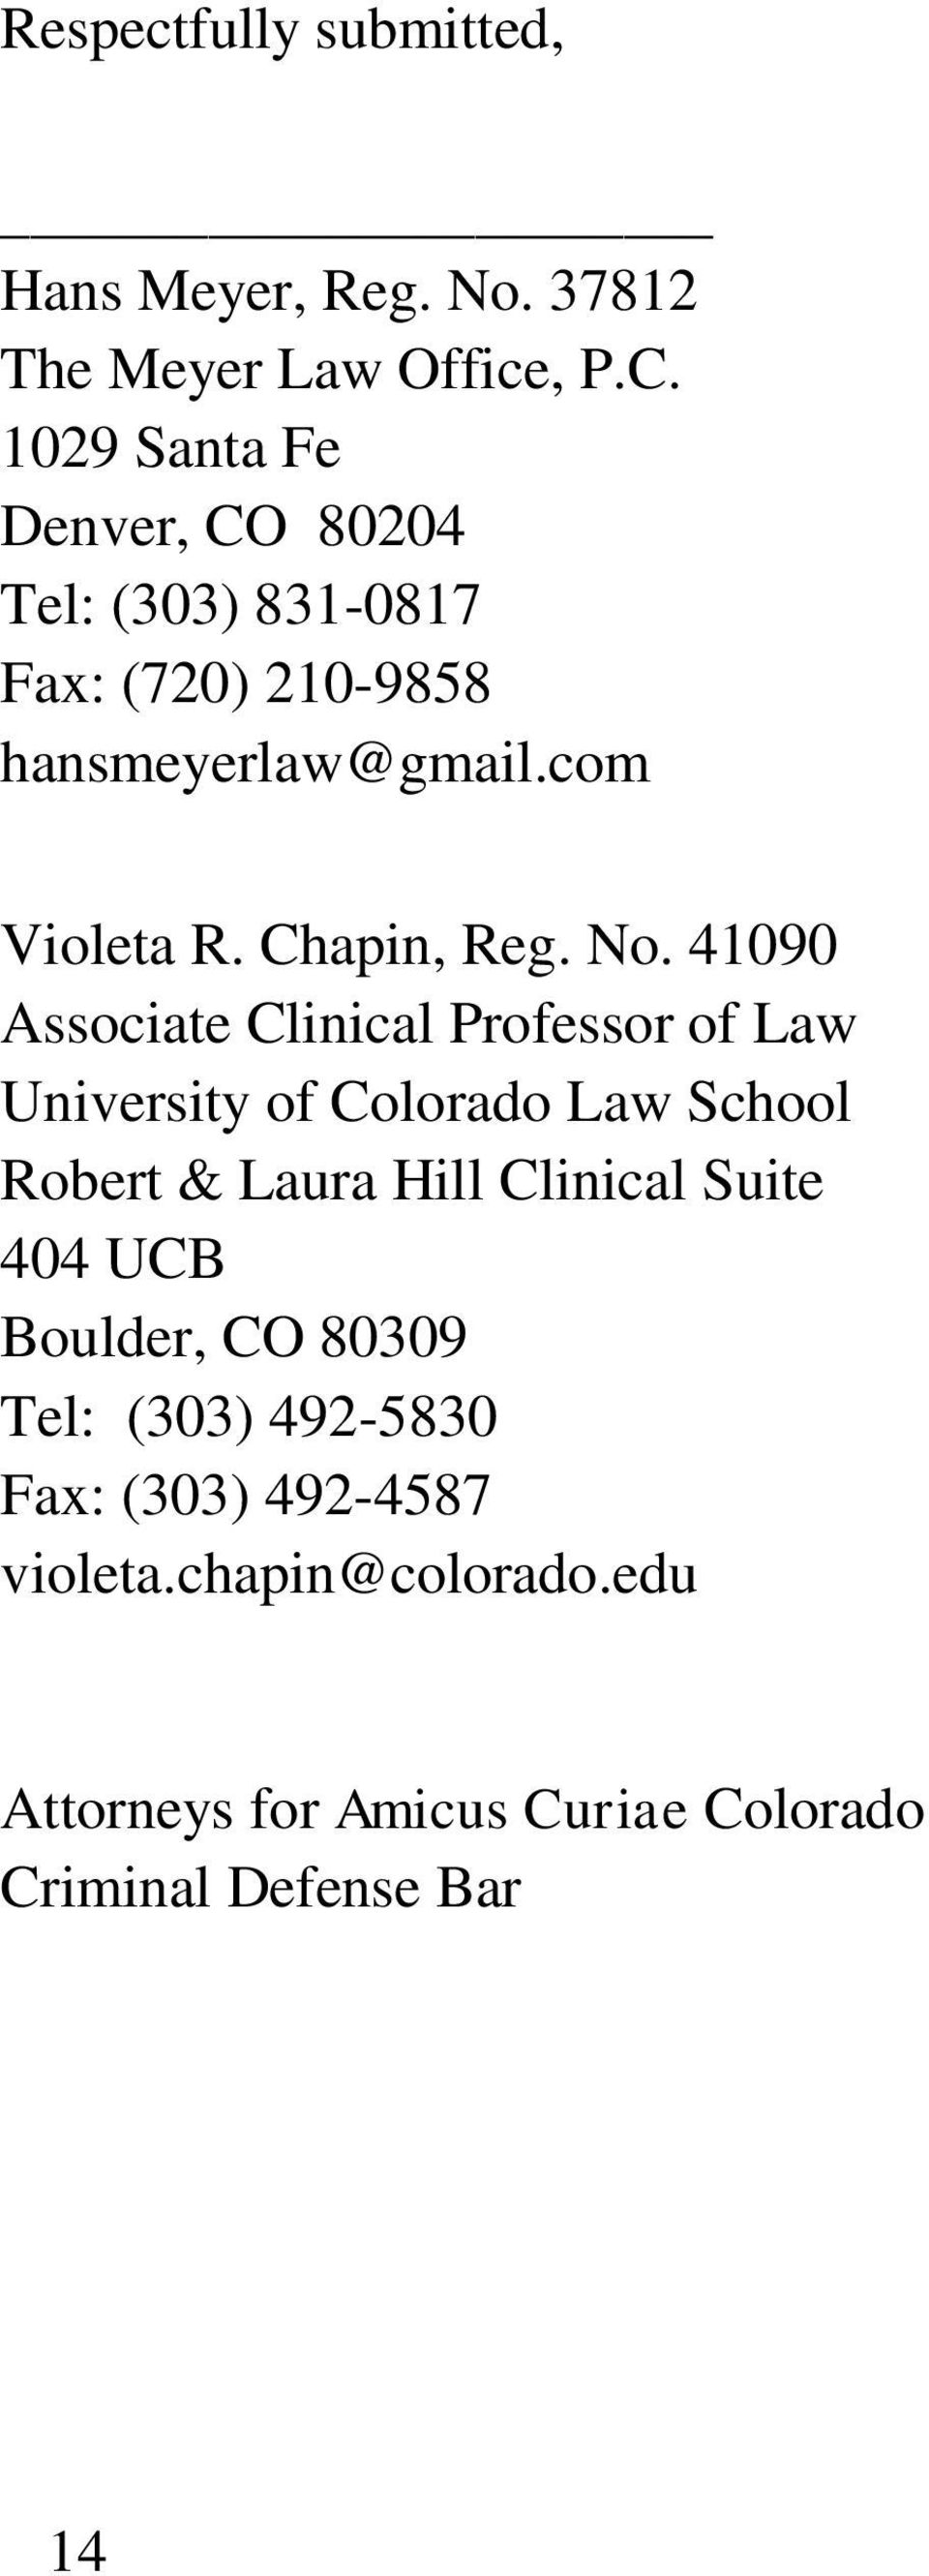 No. 41090 Associate Clinical Professor of Law University of Colorado Law School Robert & Laura Hill Clinical Suite